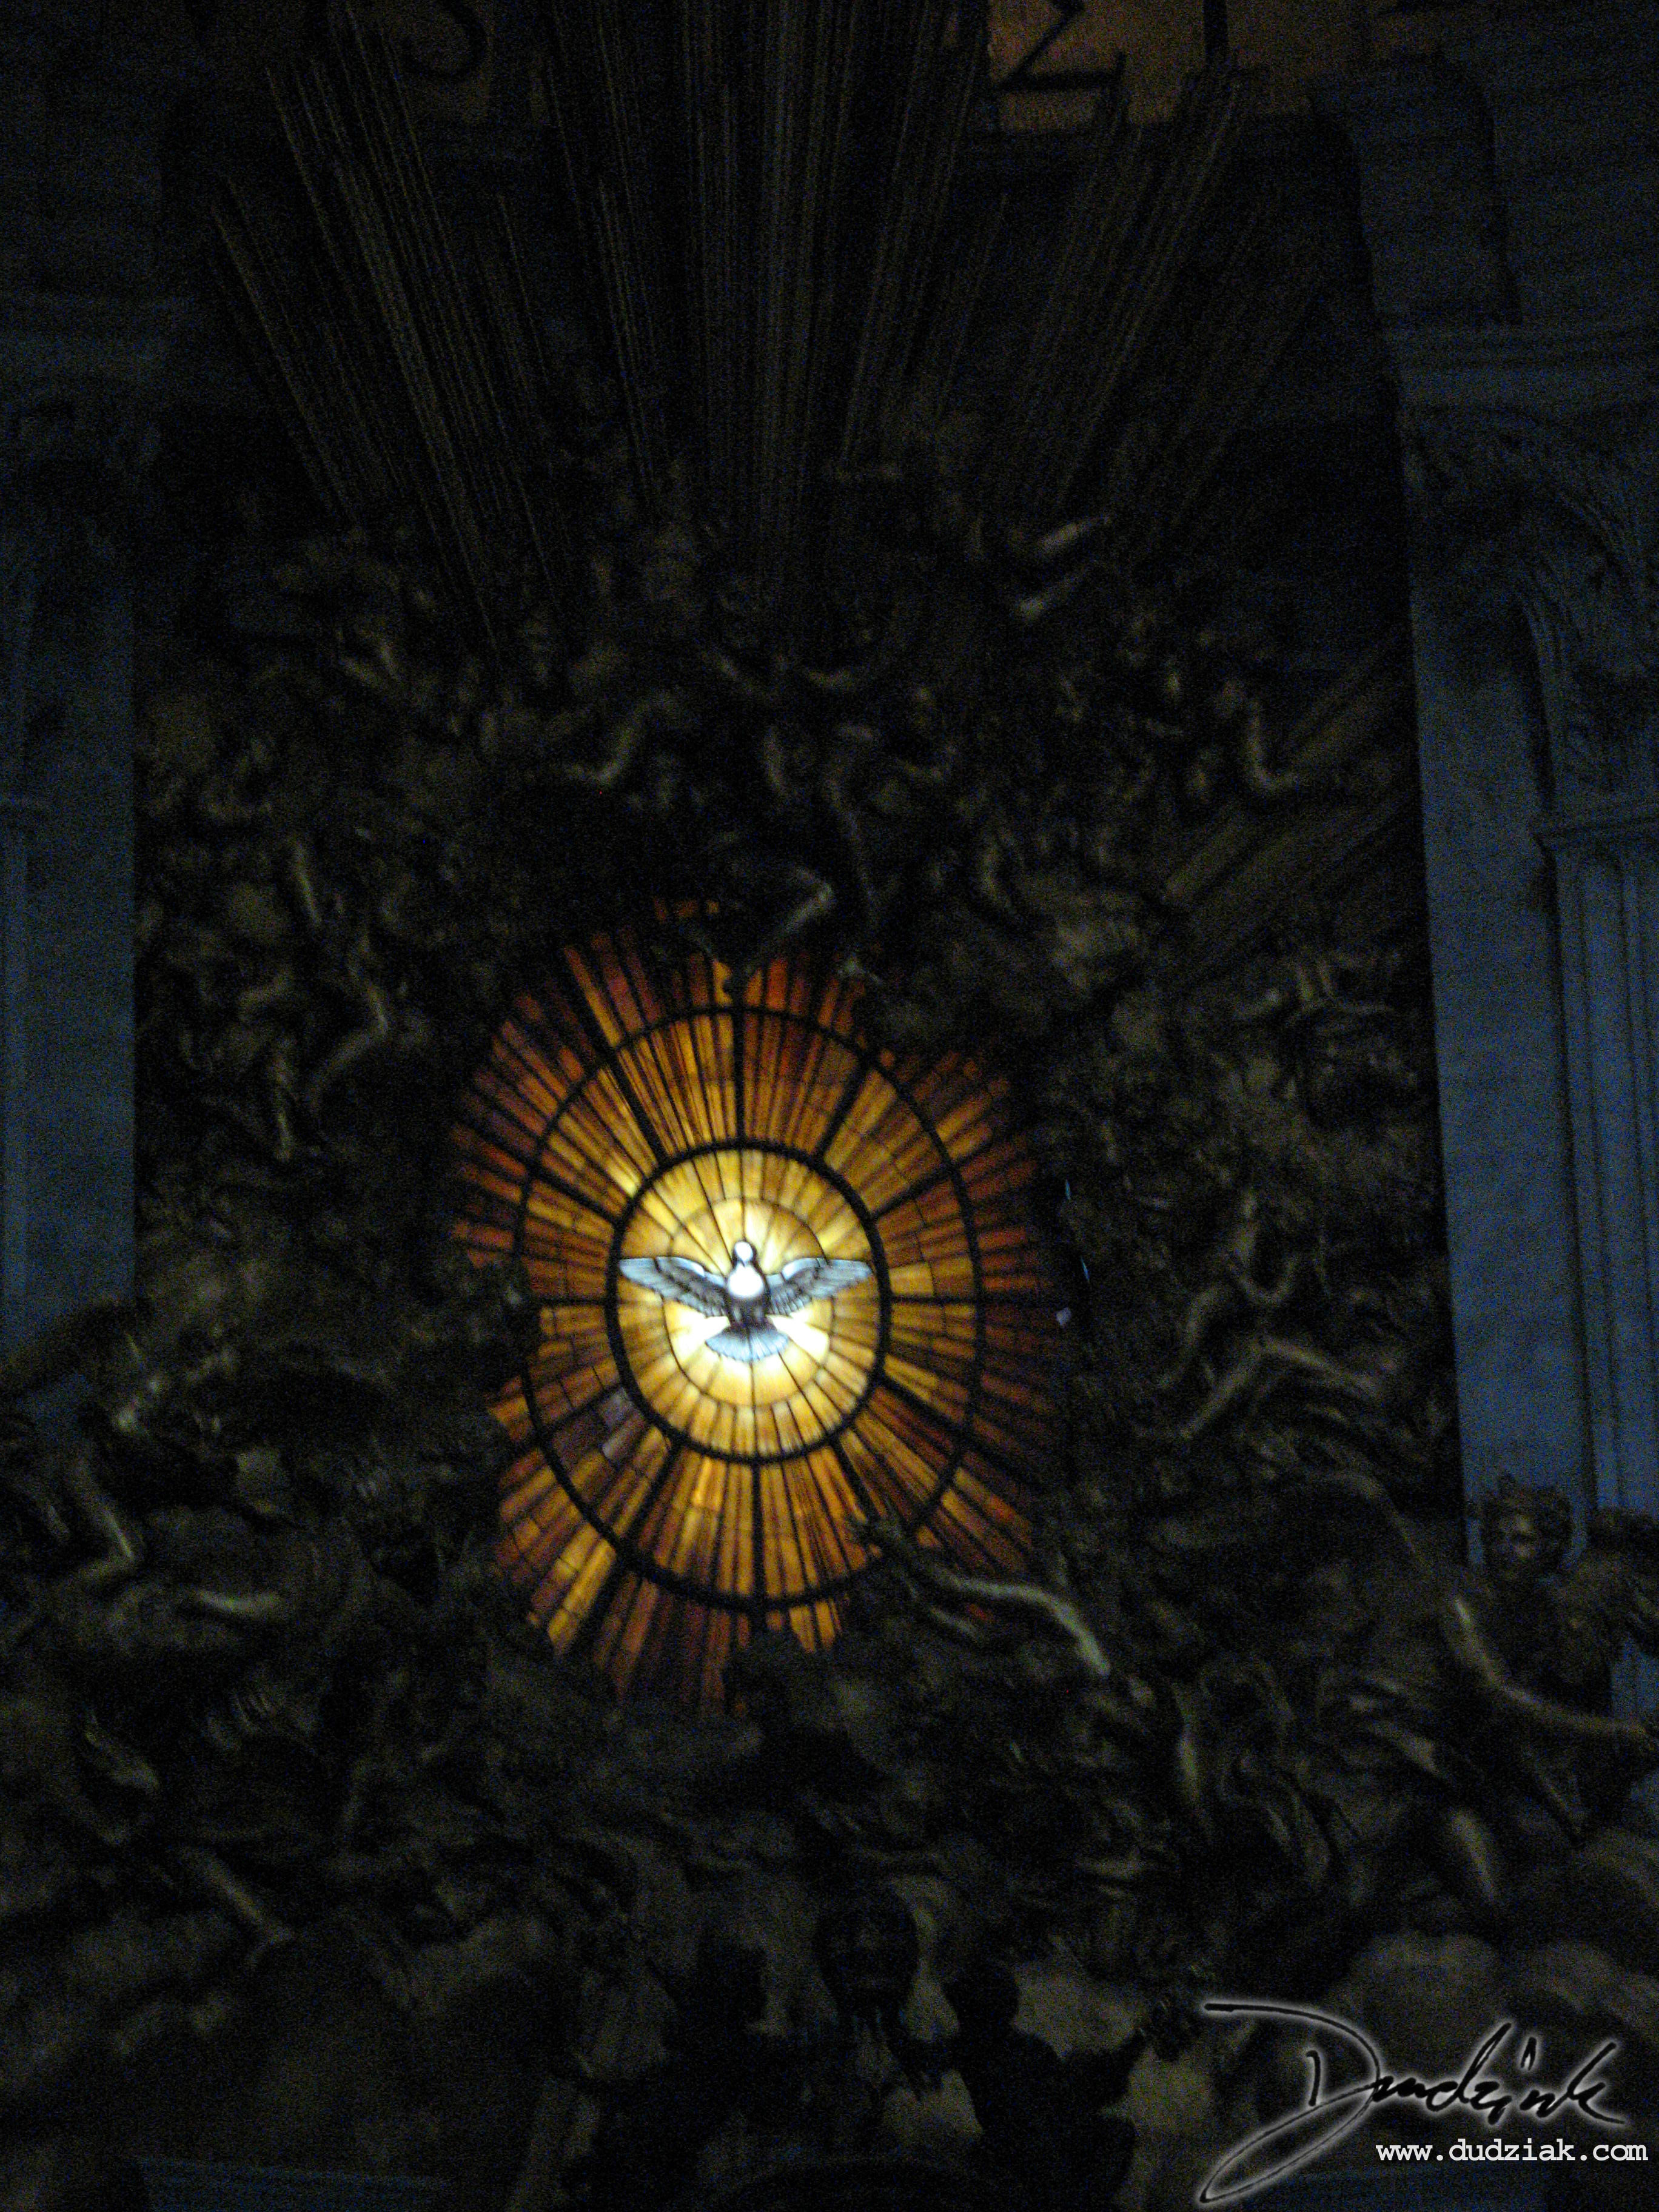 Picture of stained glass window overlooking the Chair of Saint Peter in Saint Peter's Basilica.